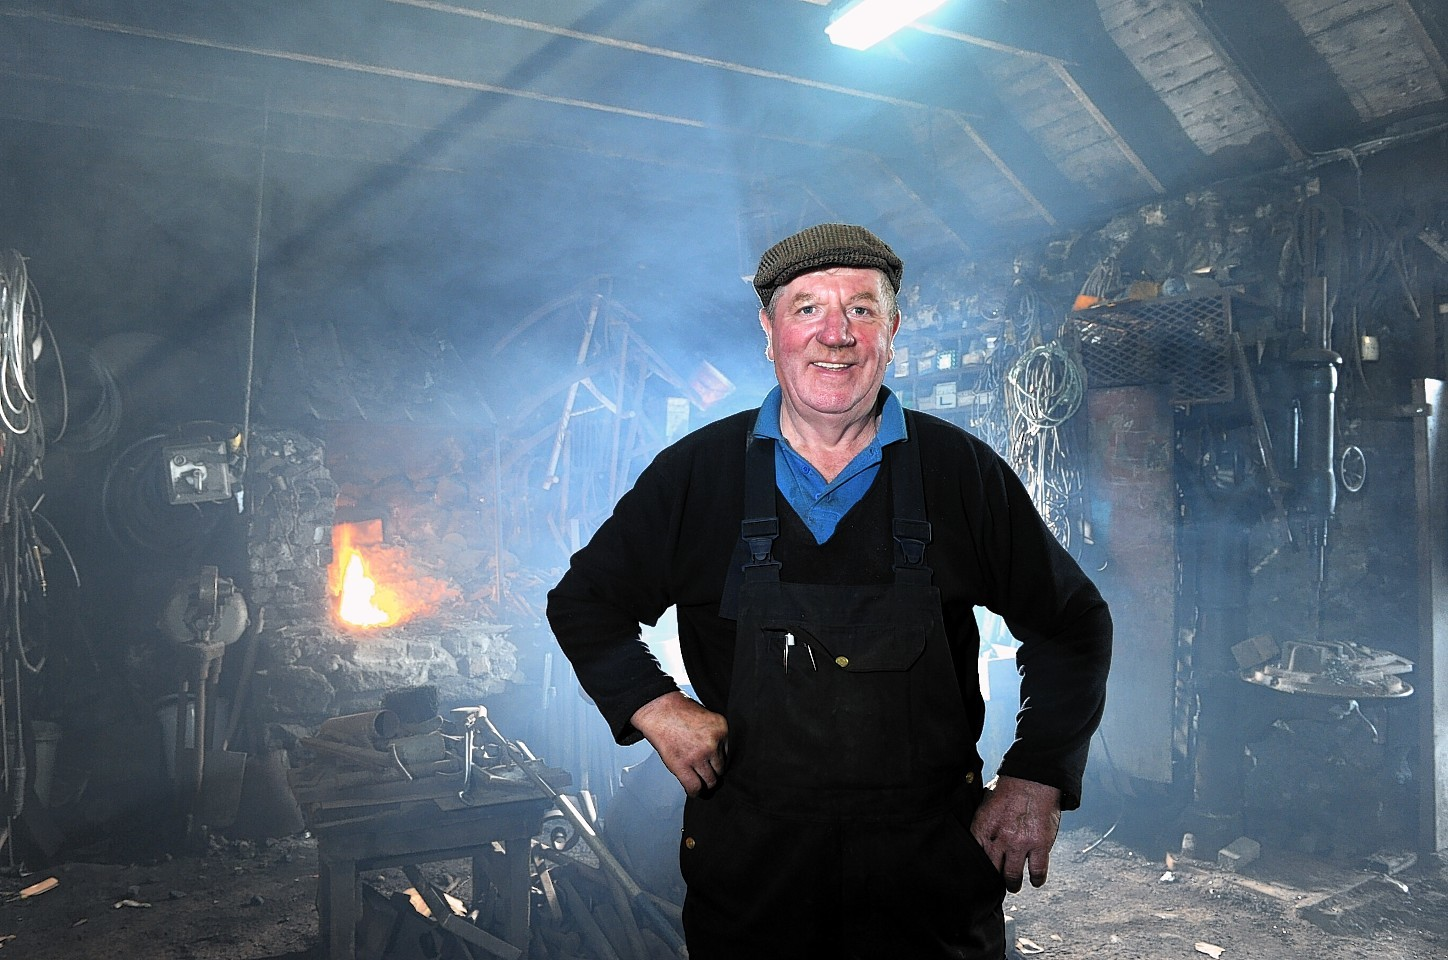 David Forsyth from St Combs who has been working as an agricultural engineer and blacksmith for 50 years.